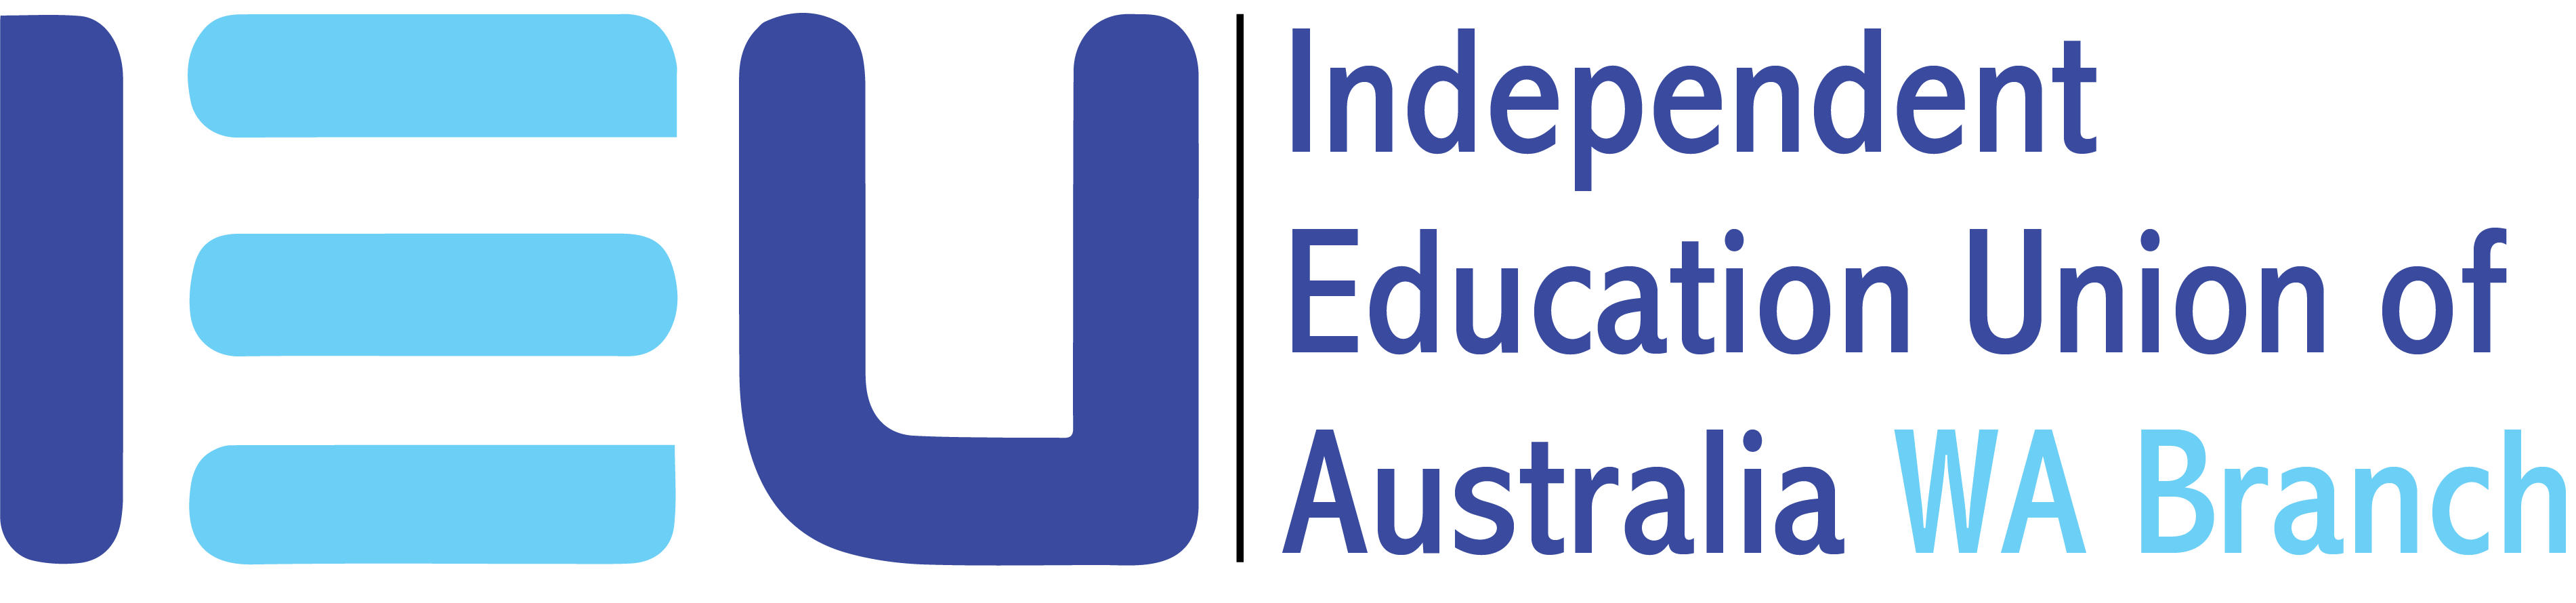 Independent Education Union of Australia WA Branch